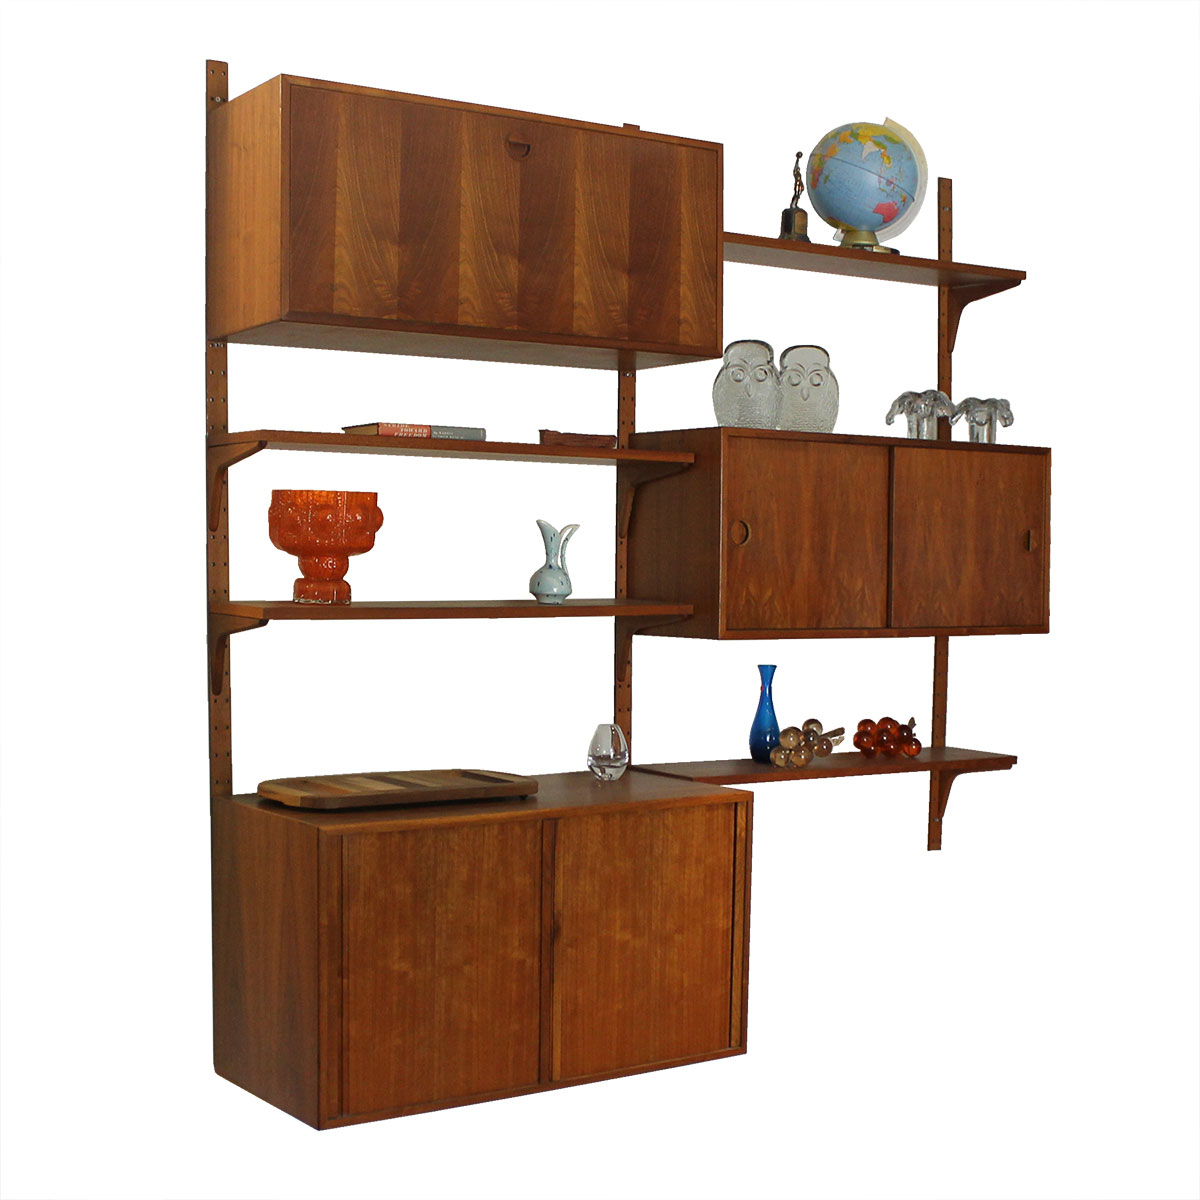 Danish Modern Wall Unit Shelving System